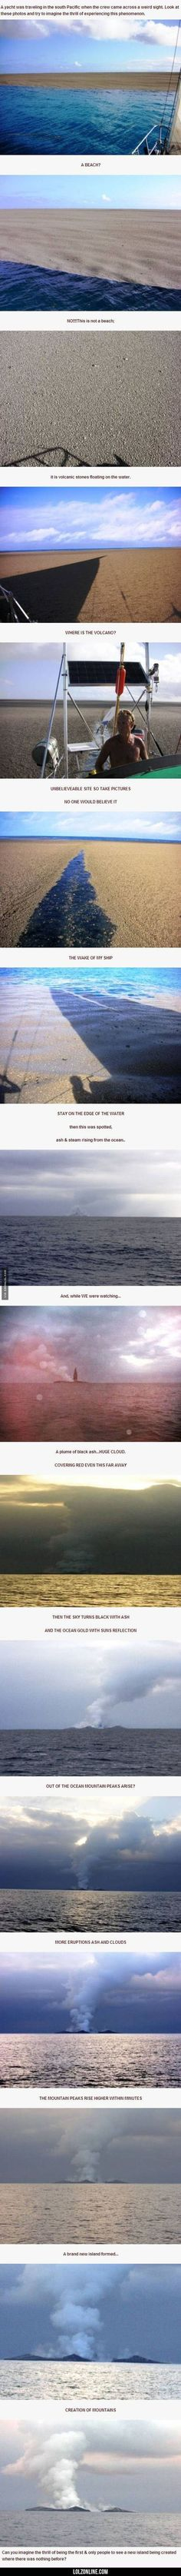 Creation Of New Land, Such An Incredible Event#funny #lol #lolzonline